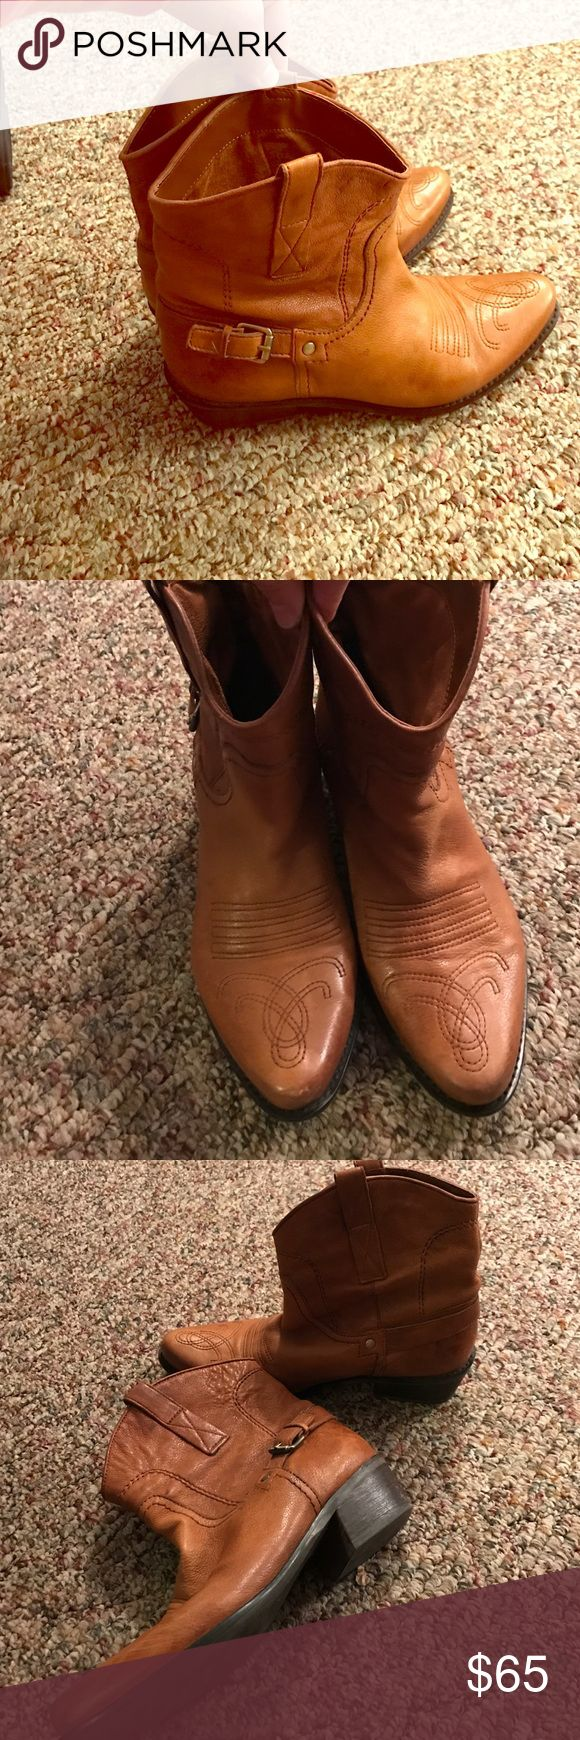 Franco Sarto ankle cowboy boots 8.5 Franco Sarto 8.5 cowboy boots. Great condition wore twice really soft good leather. Women's size 8.5 color is camel color Franco Sarto Shoes Ankle Boots & Booties